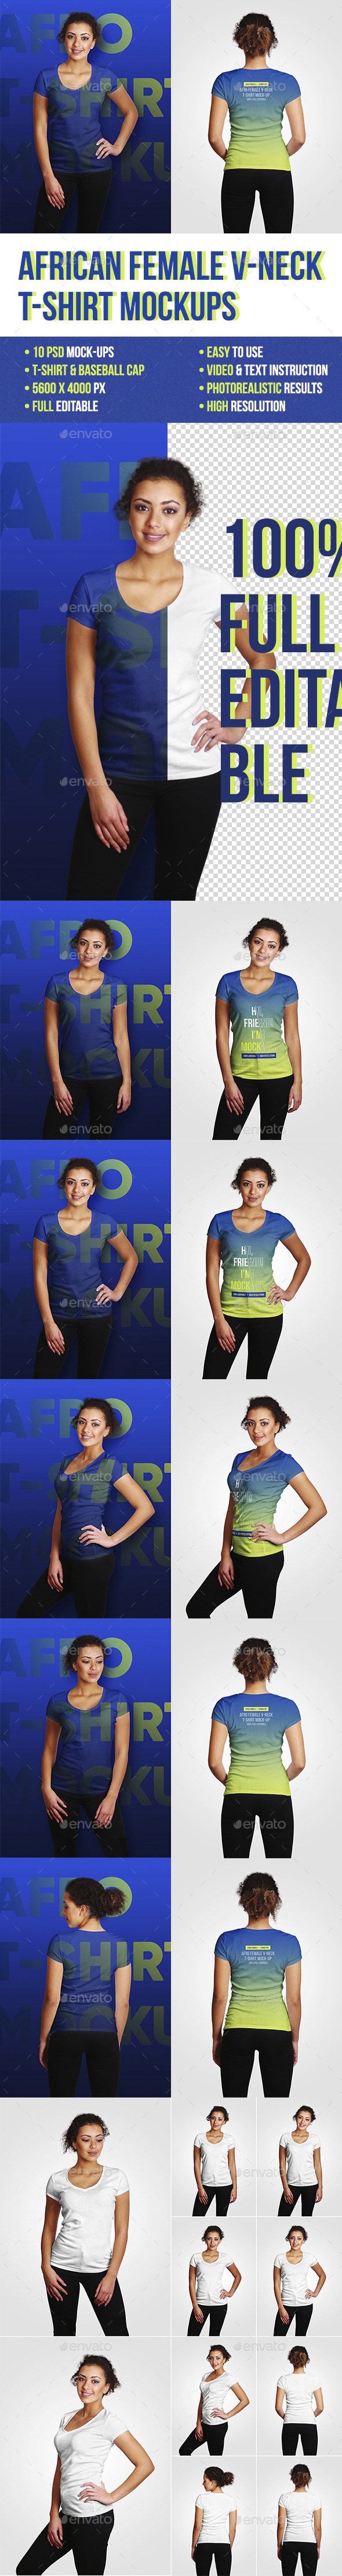 GraphicRiver African V-Neck Female T-Shirt Mockups 21162391